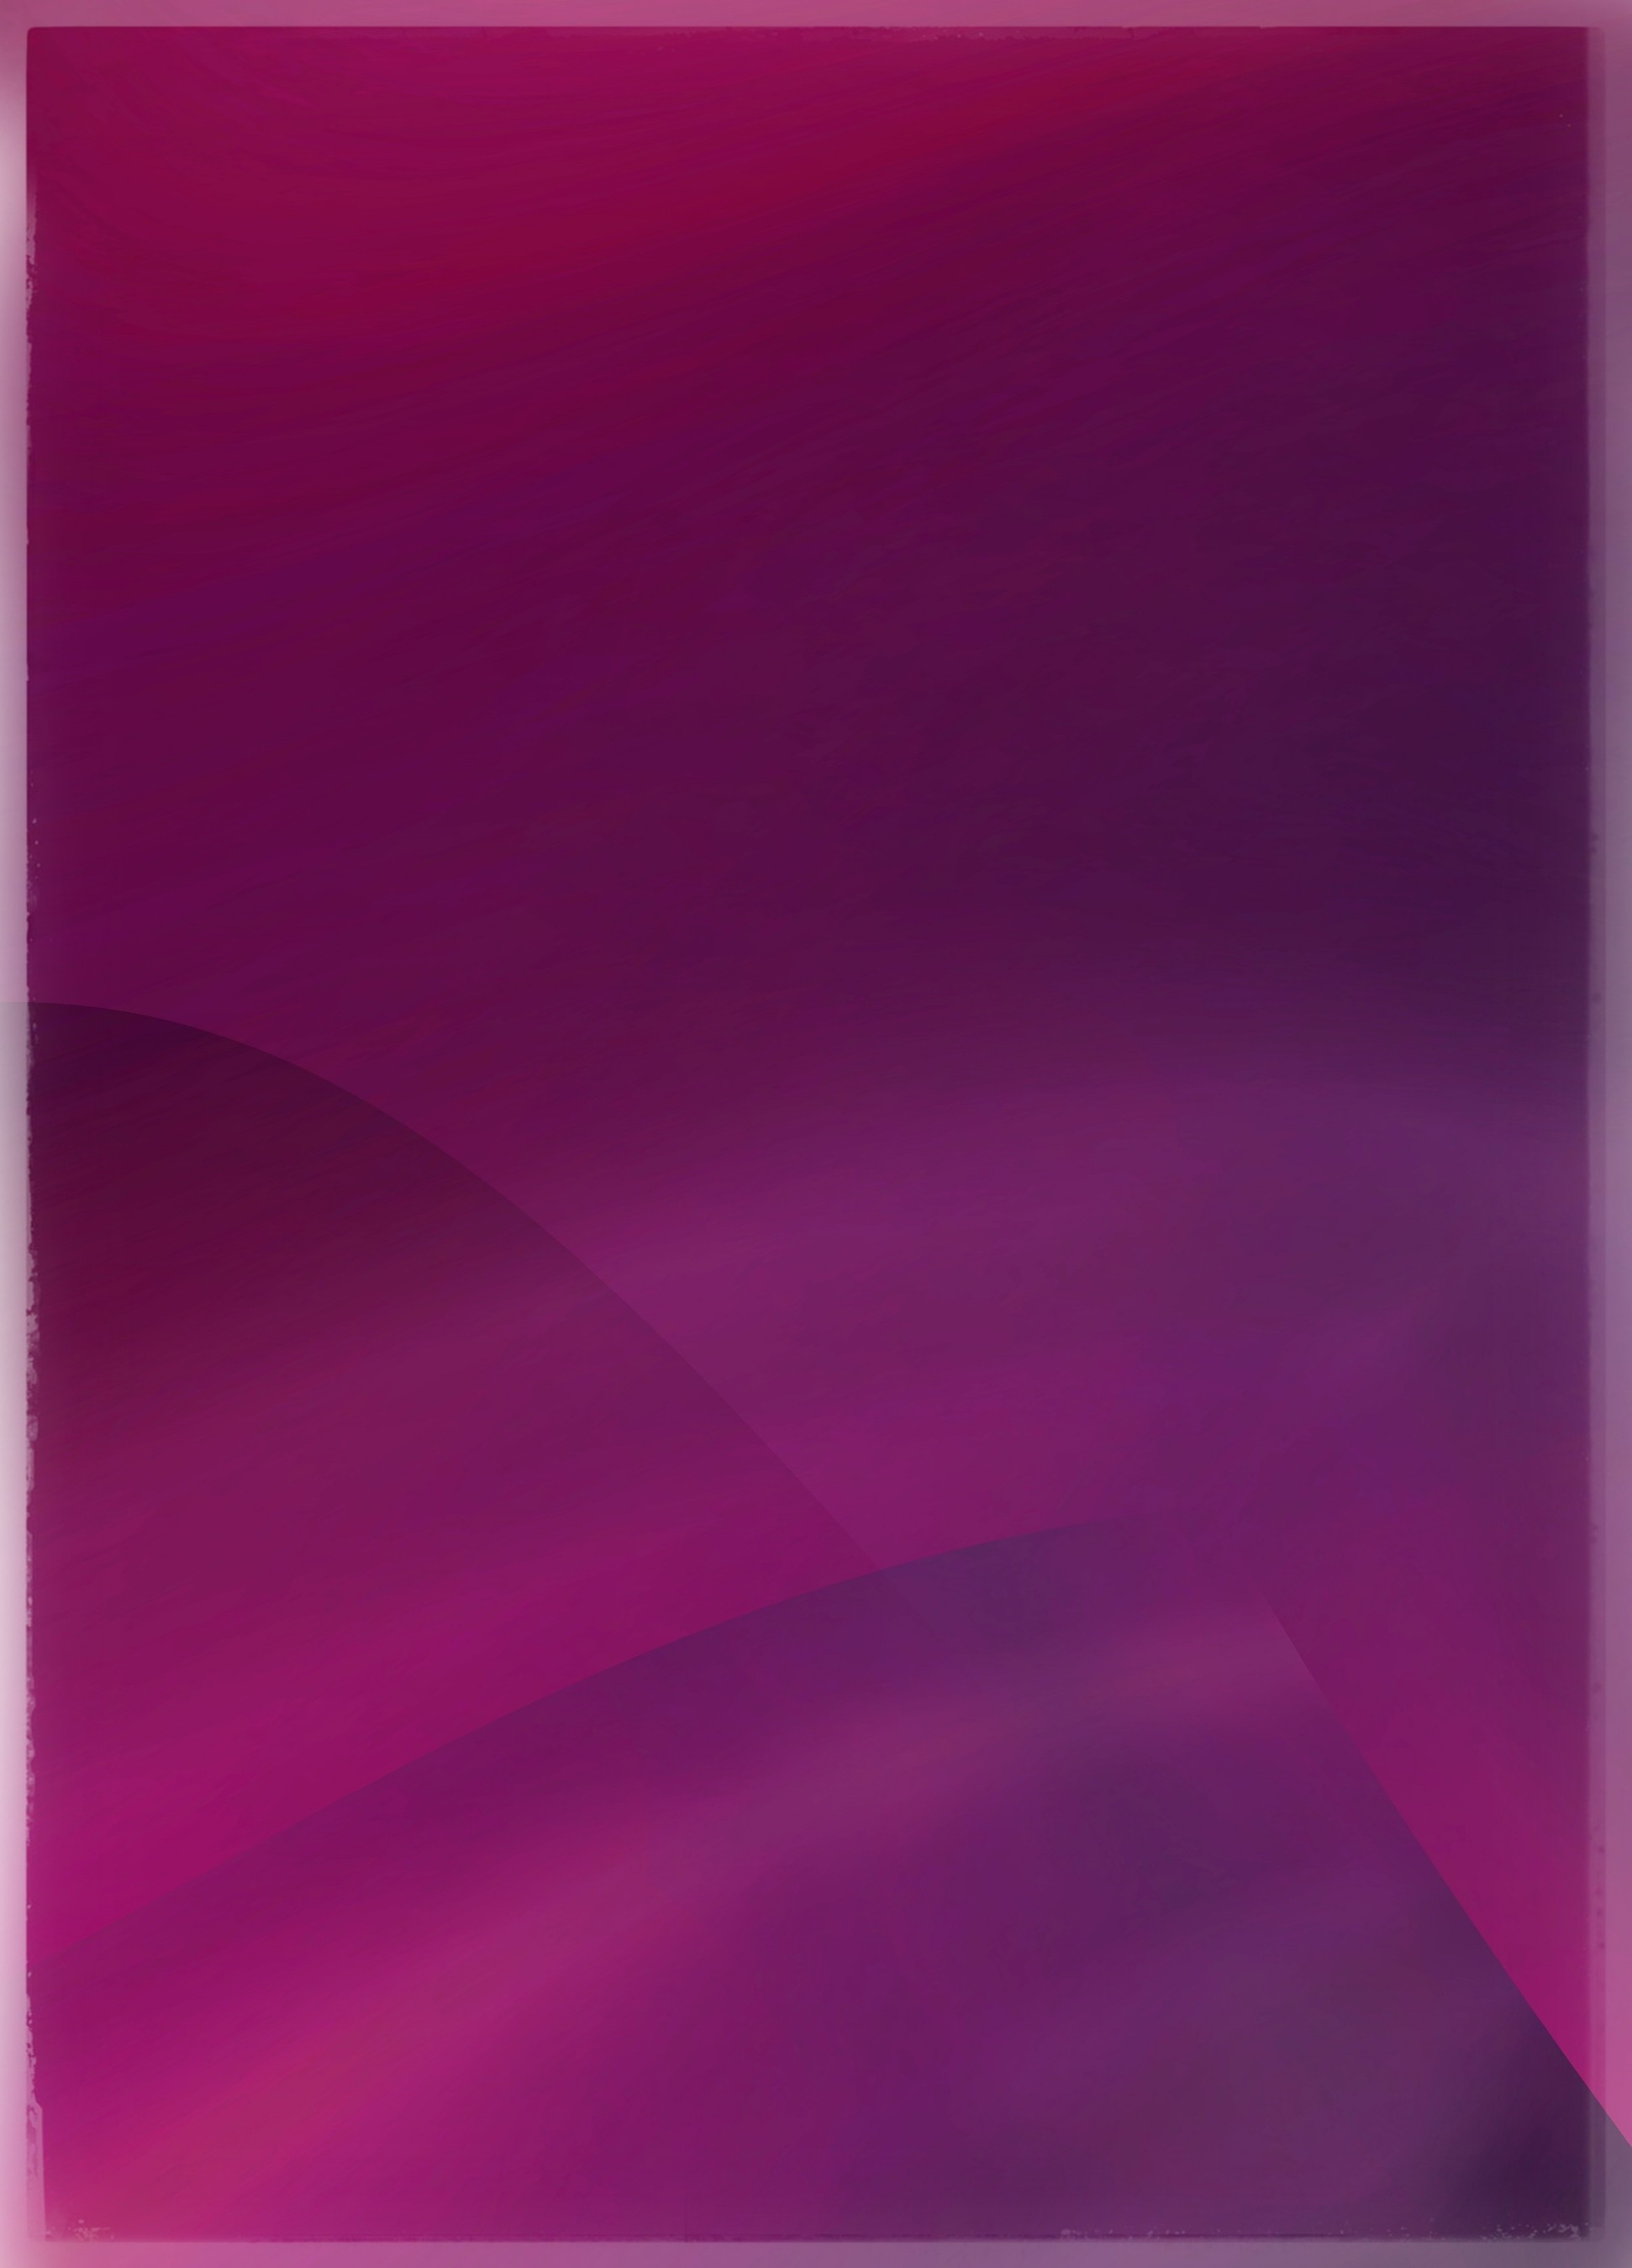 #background #hills #magenta #art #merlin #artwork #digitalart #digitalartwork #freetoedit